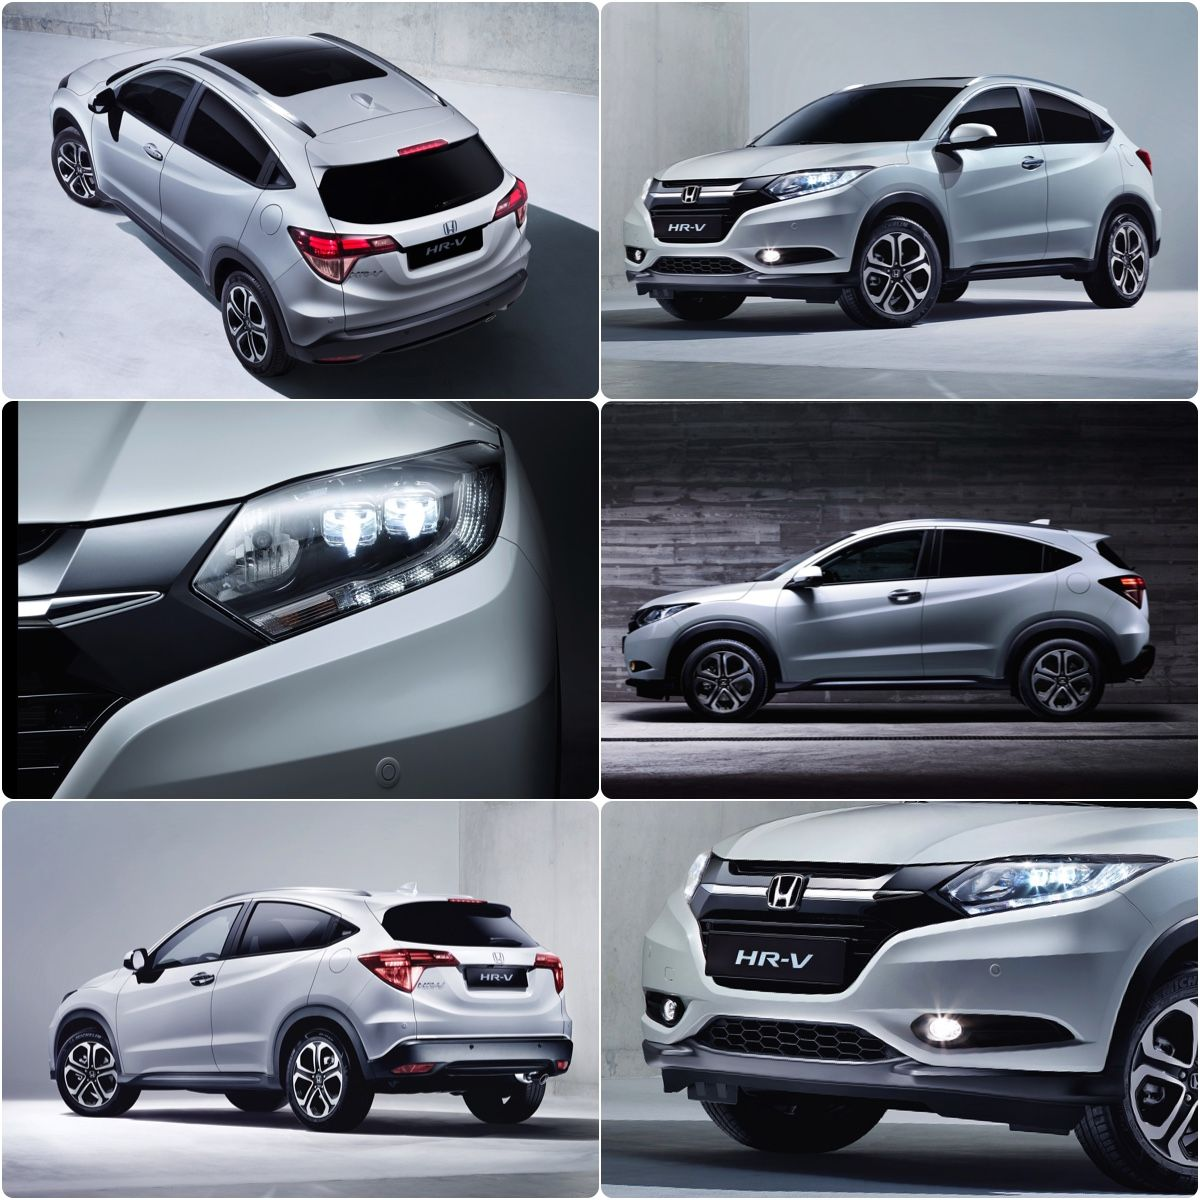 all-new honda hr-v, classy and fuel efficient. another ultra